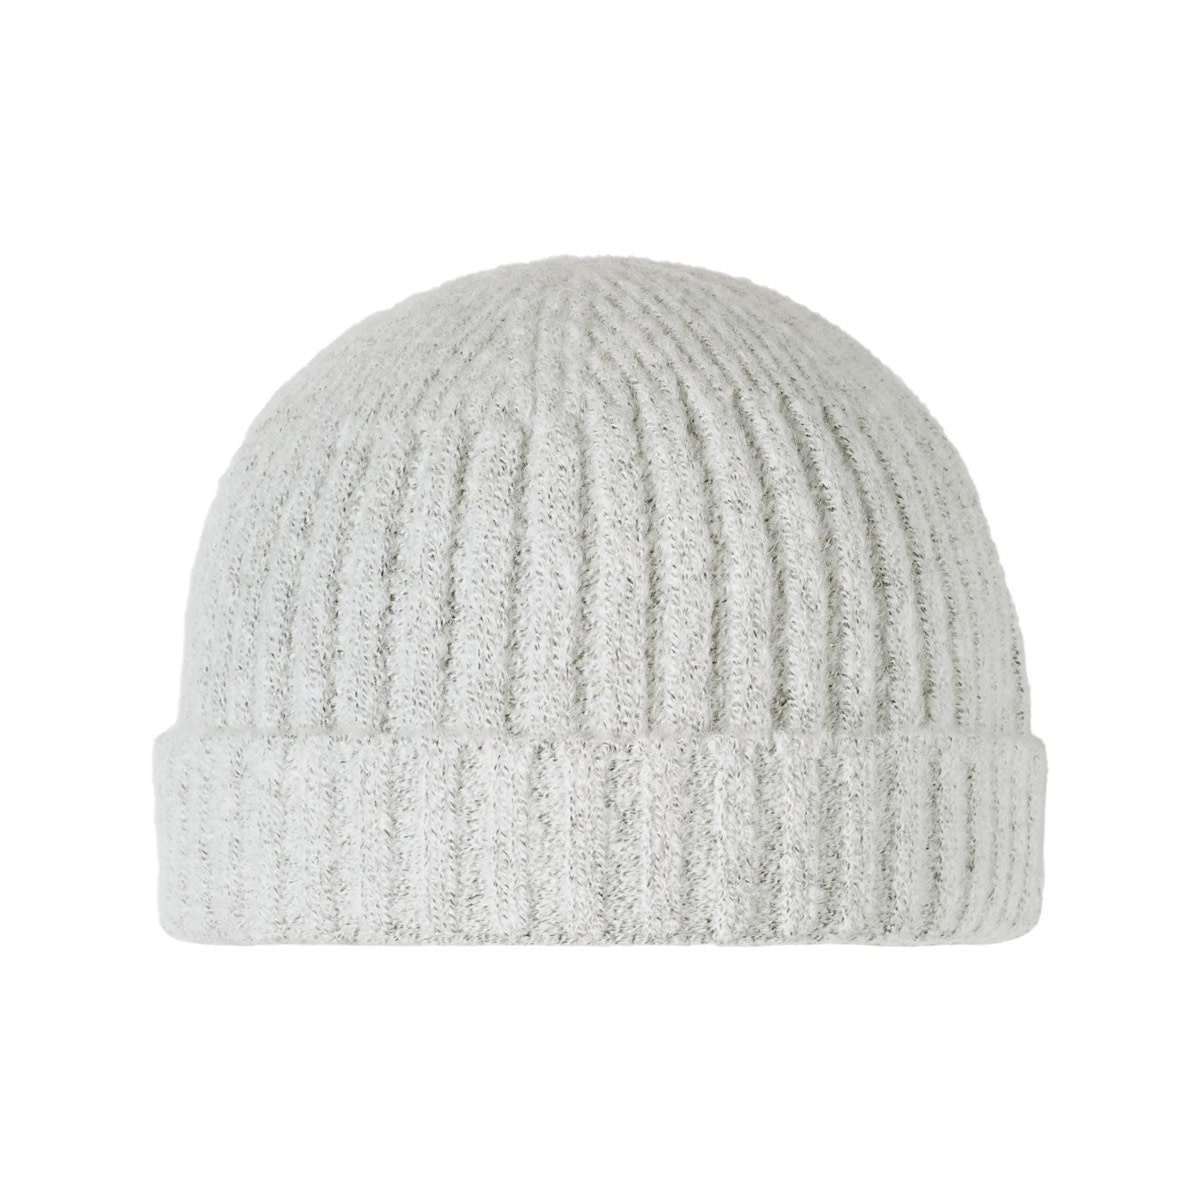 With love Beanie cutie - off white